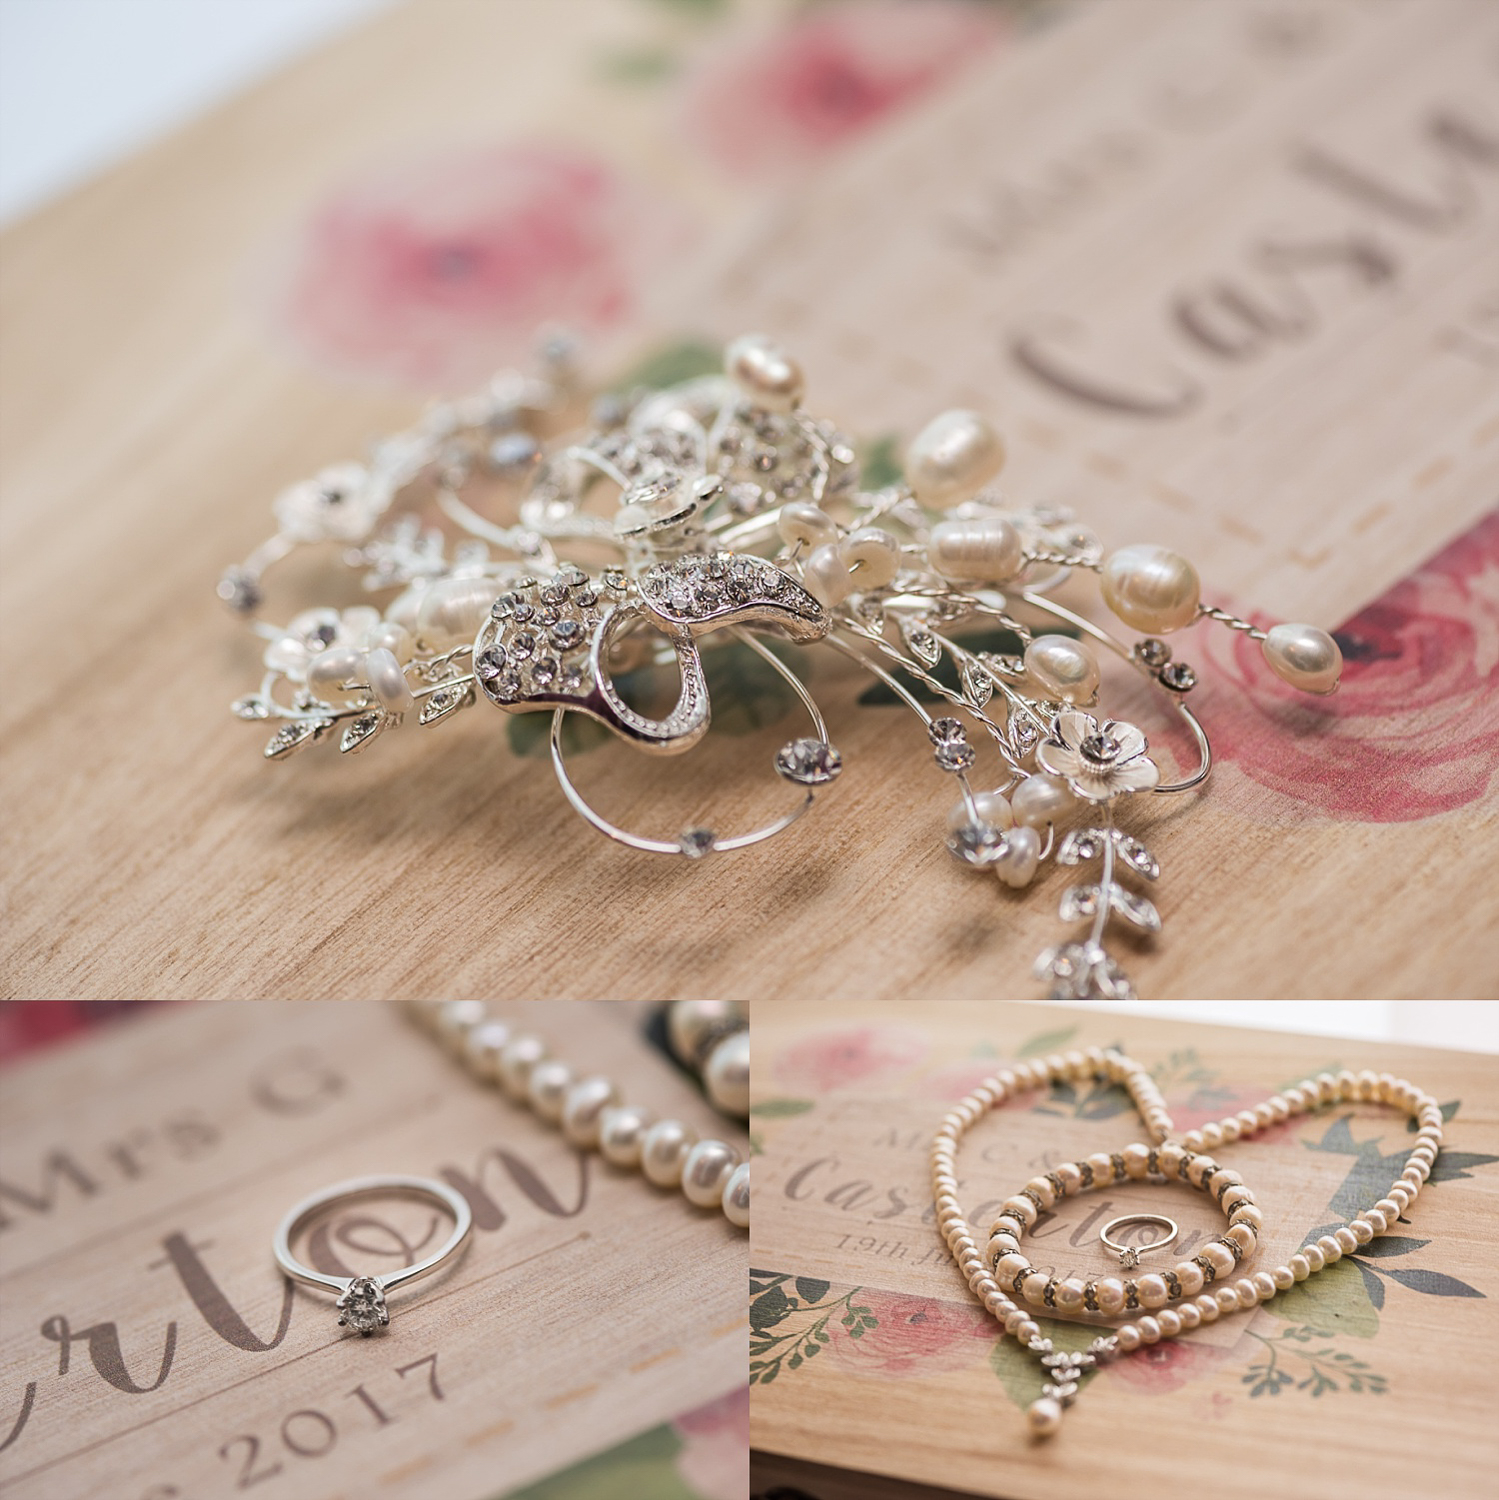 Exquisite shots of bridal details prep